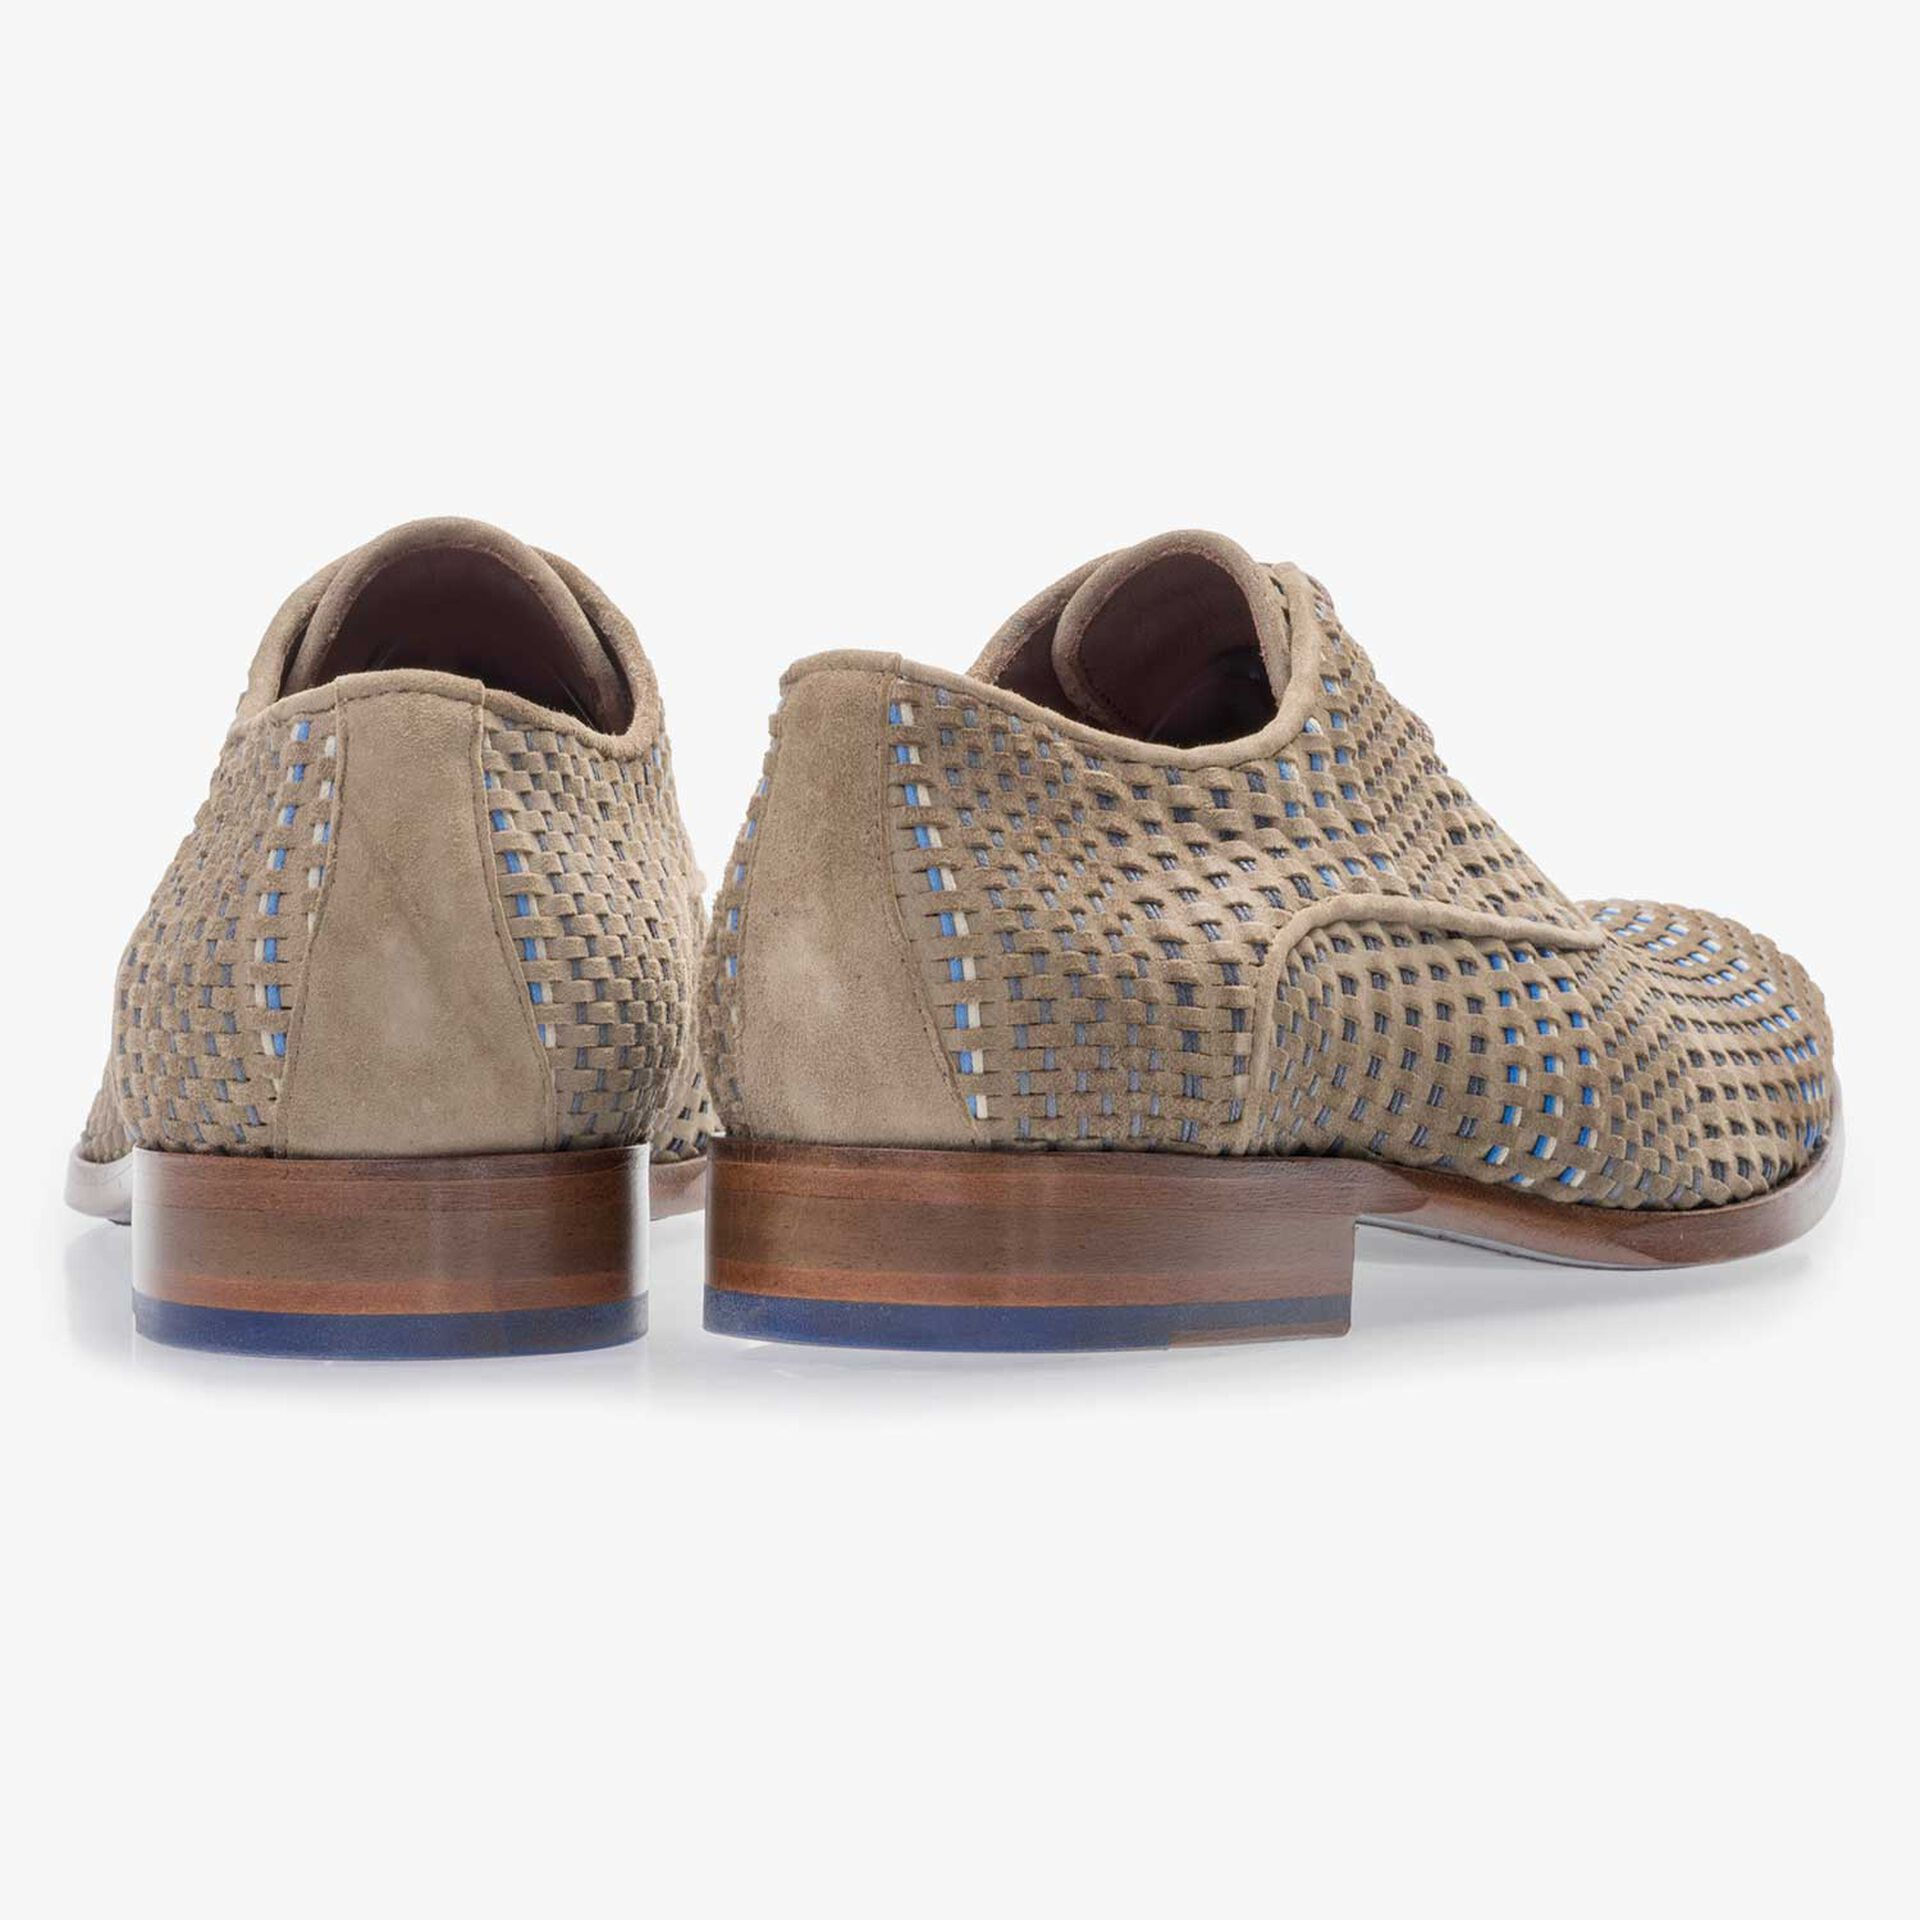 Taupe-coloured lace shoe made of braided leather